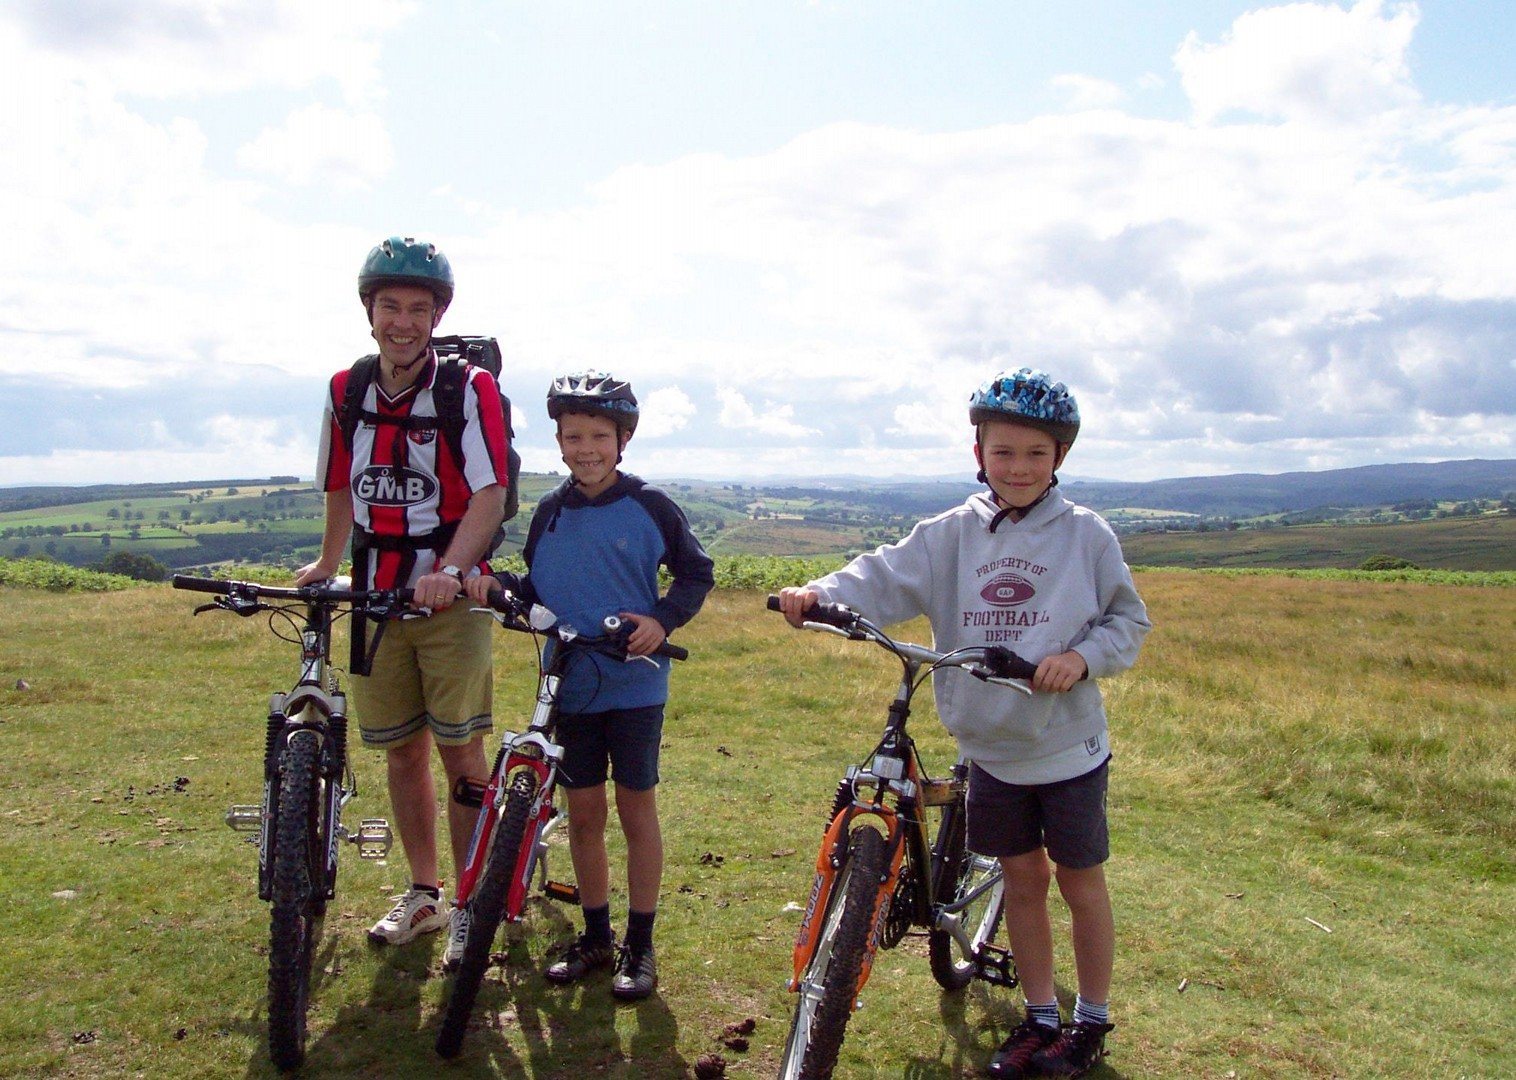 bike-skills-lake-district-guided-holiday.jpg - UK - Lake District - Bike Skills - Family Cycling